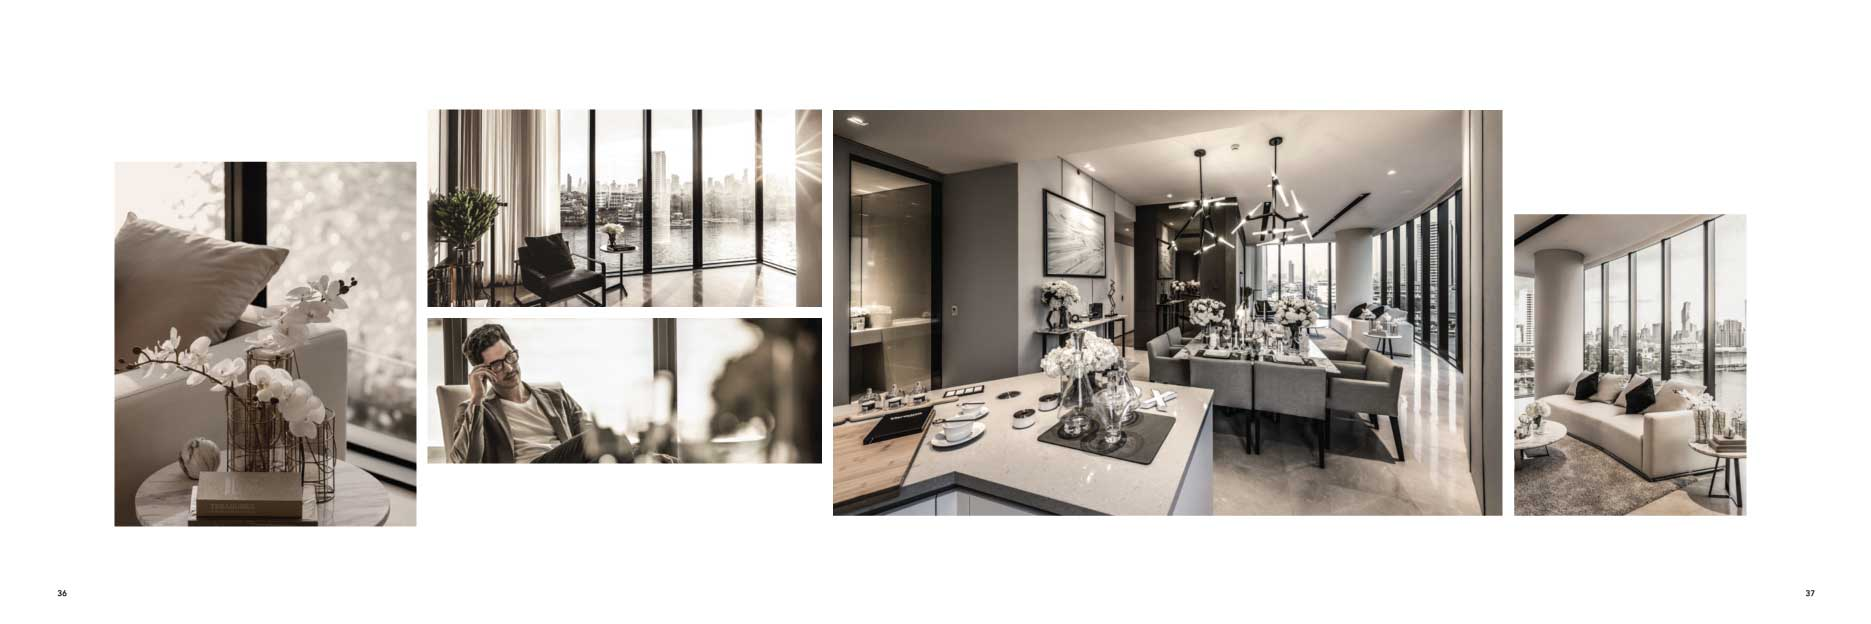 Banyan Tree Residences Riverside Bangkok Brochure 26